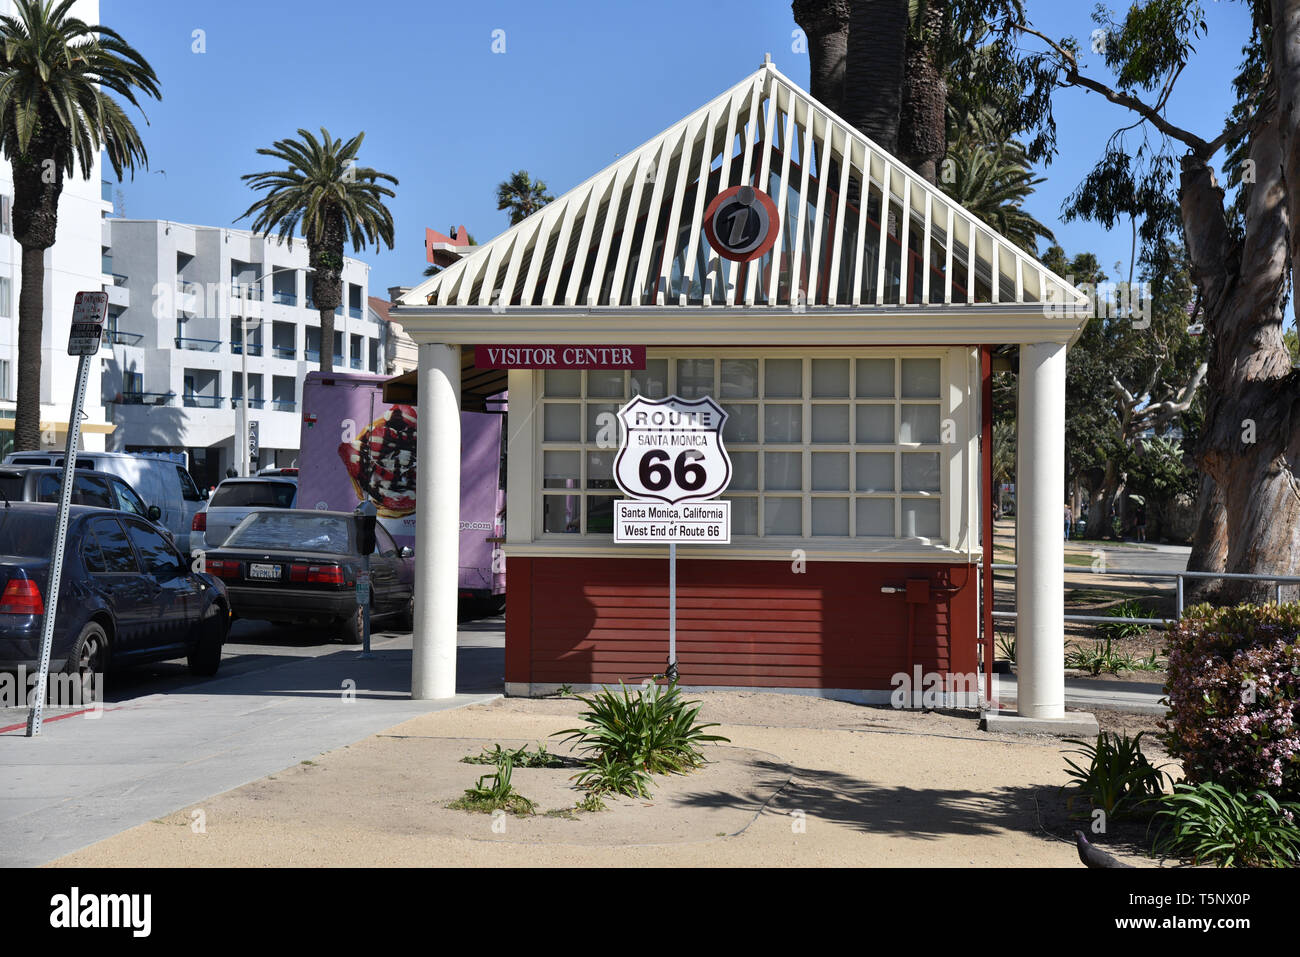 LOS ANGELES, CA/USA  - APRIL 11, 2019: Sign marking the western end of the historic Route 66 at the Santa Monica visitors center - Stock Image